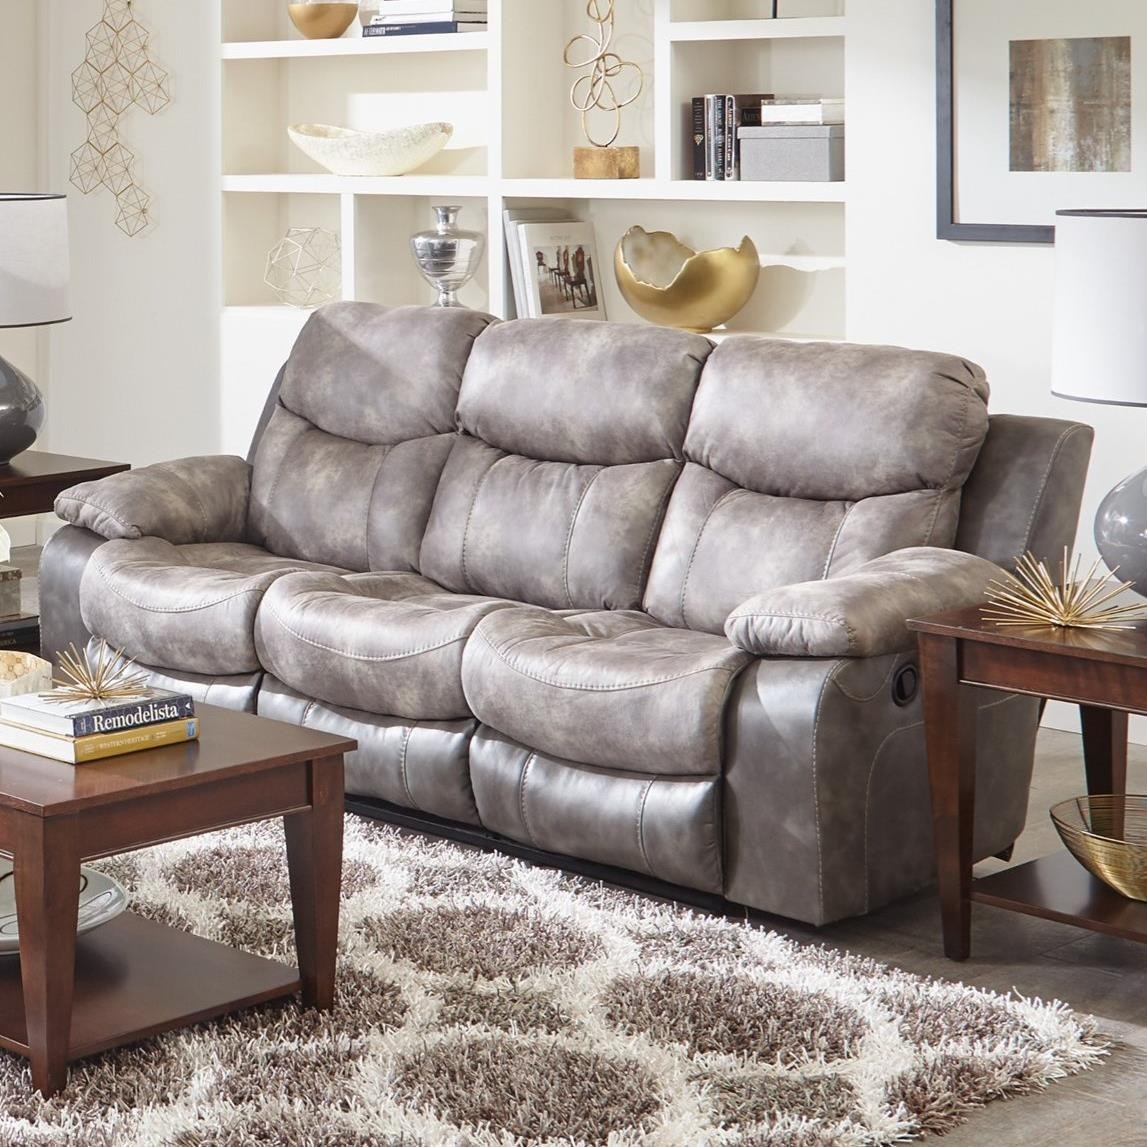 Catnapper HendersonPower Reclining Sofa With Drop Down Table